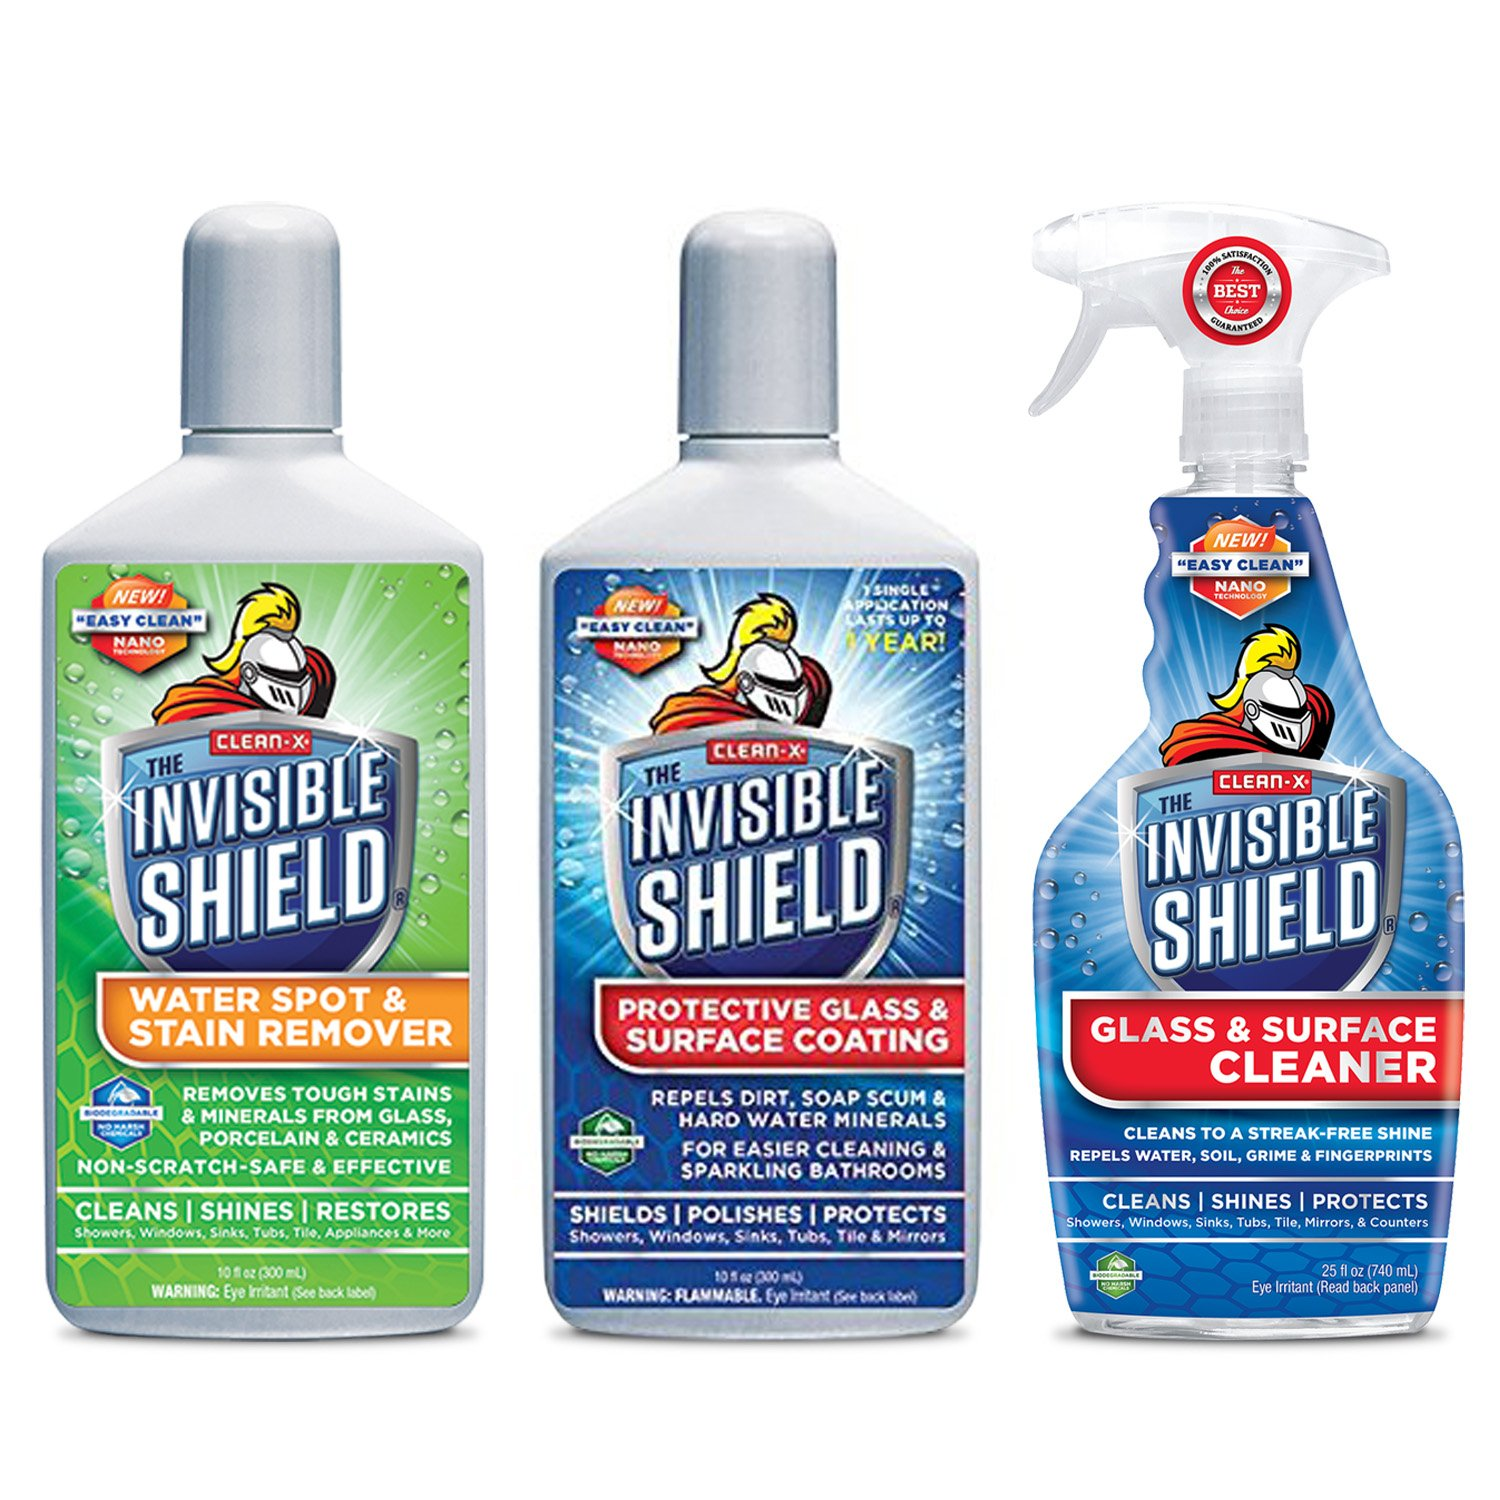 INVISIBLE SHIELD® Glass Essentials 3 Pack Combo Manufacturer Exclusive Offer by Invisible Shield